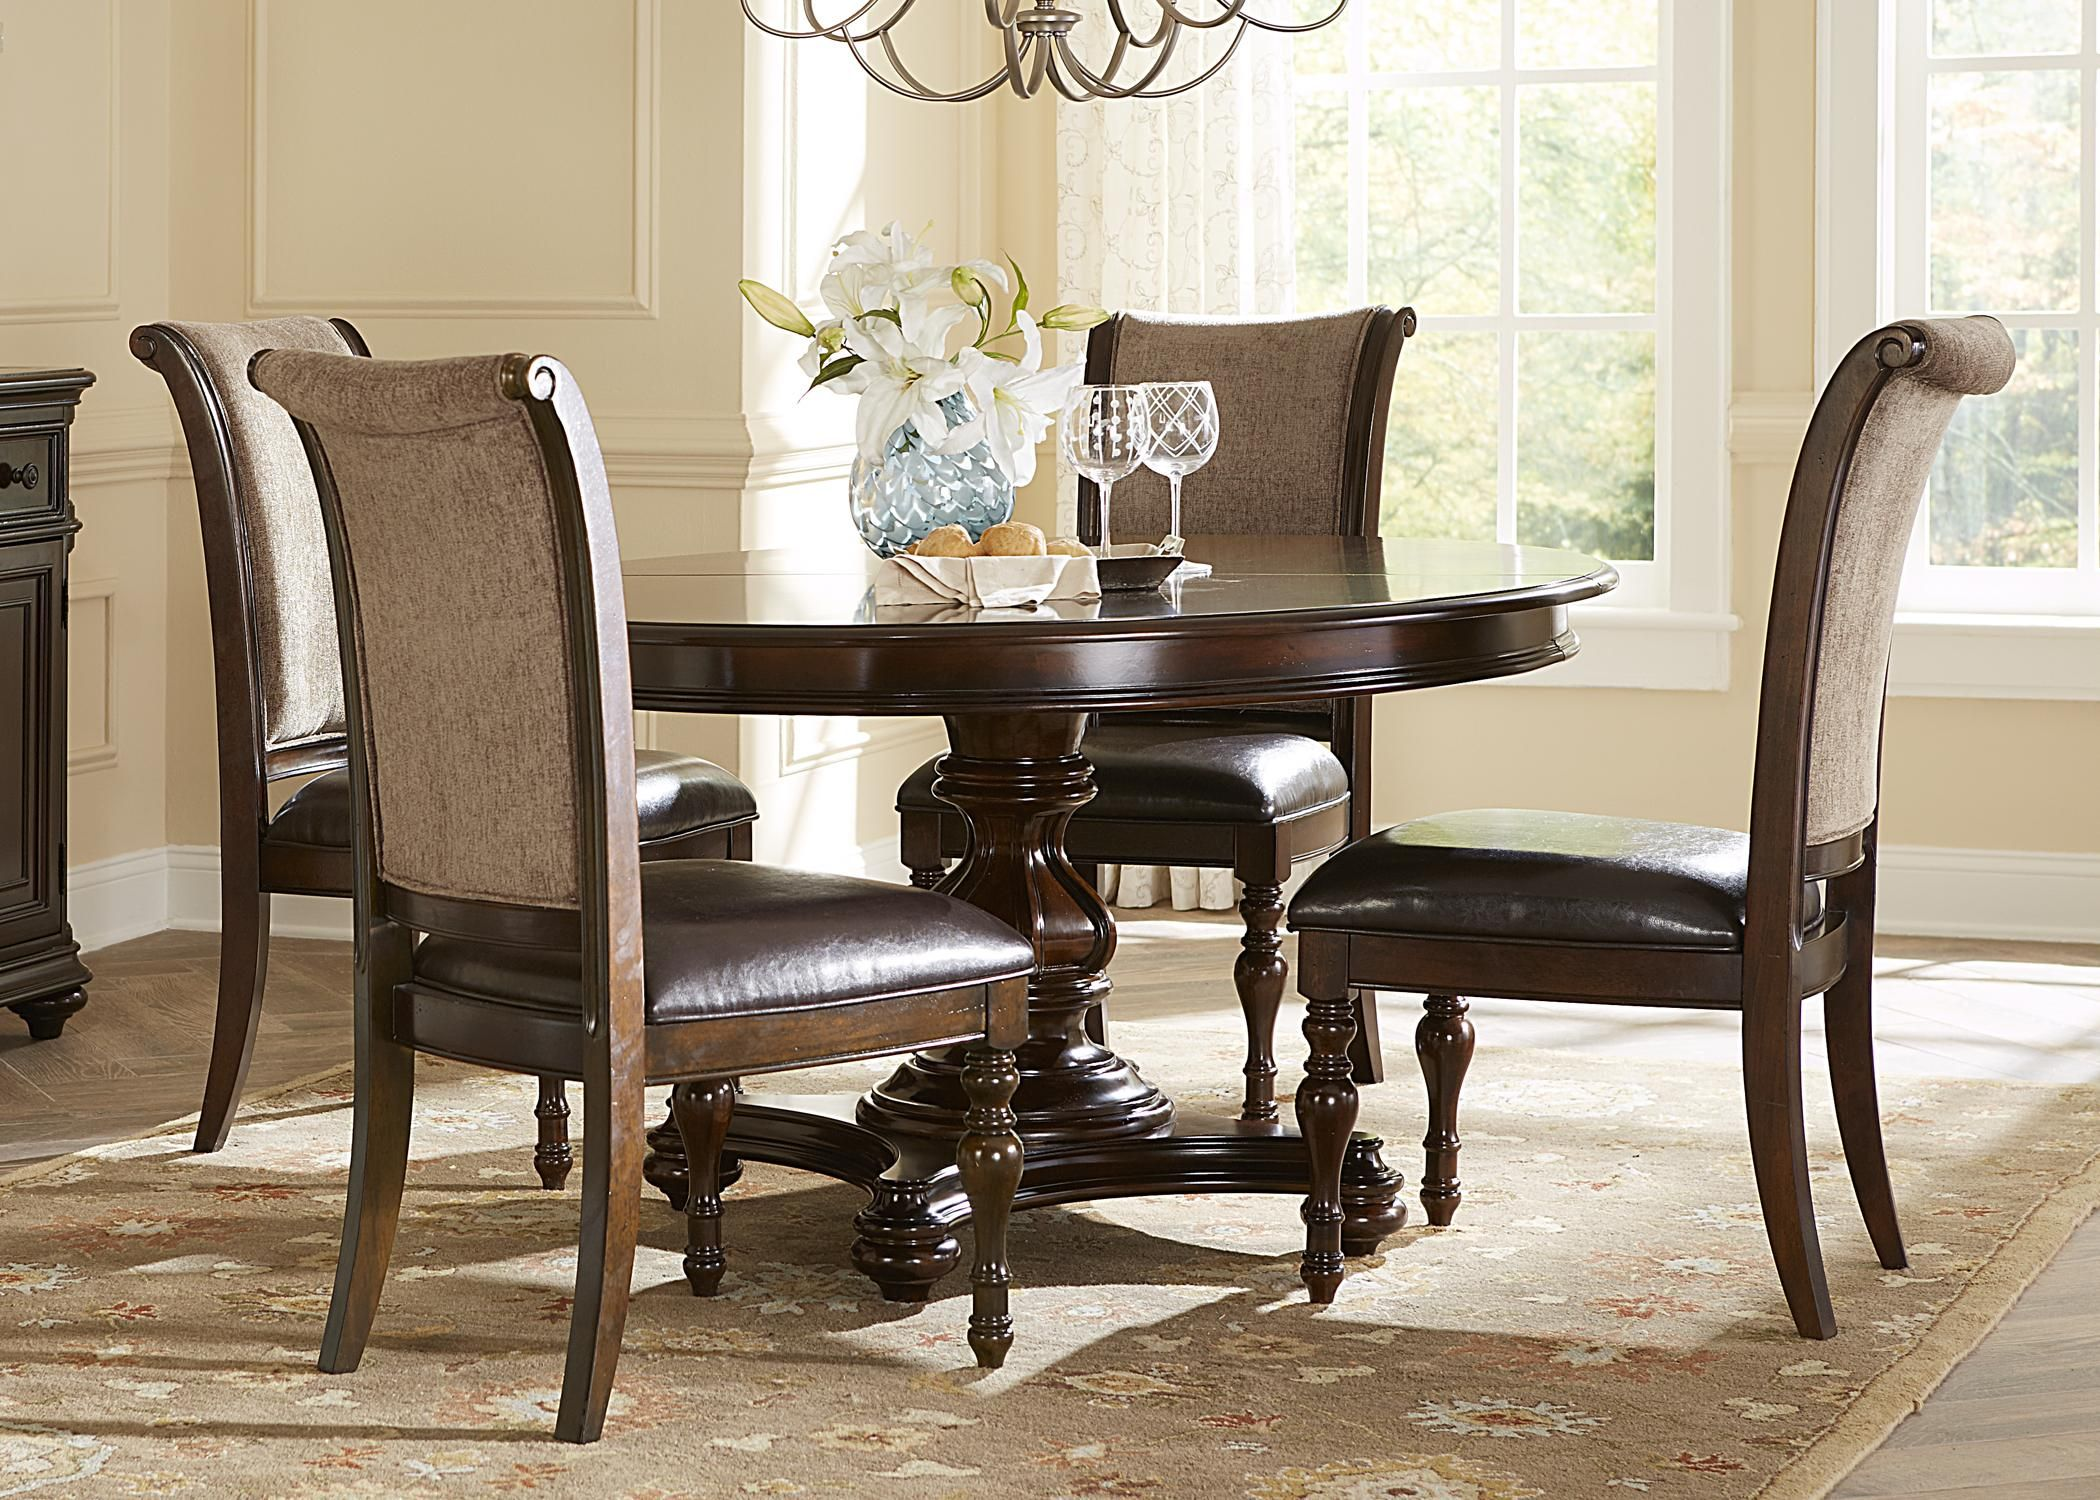 five piece oval dining table and chair set - Oval Dining Table And Chairs